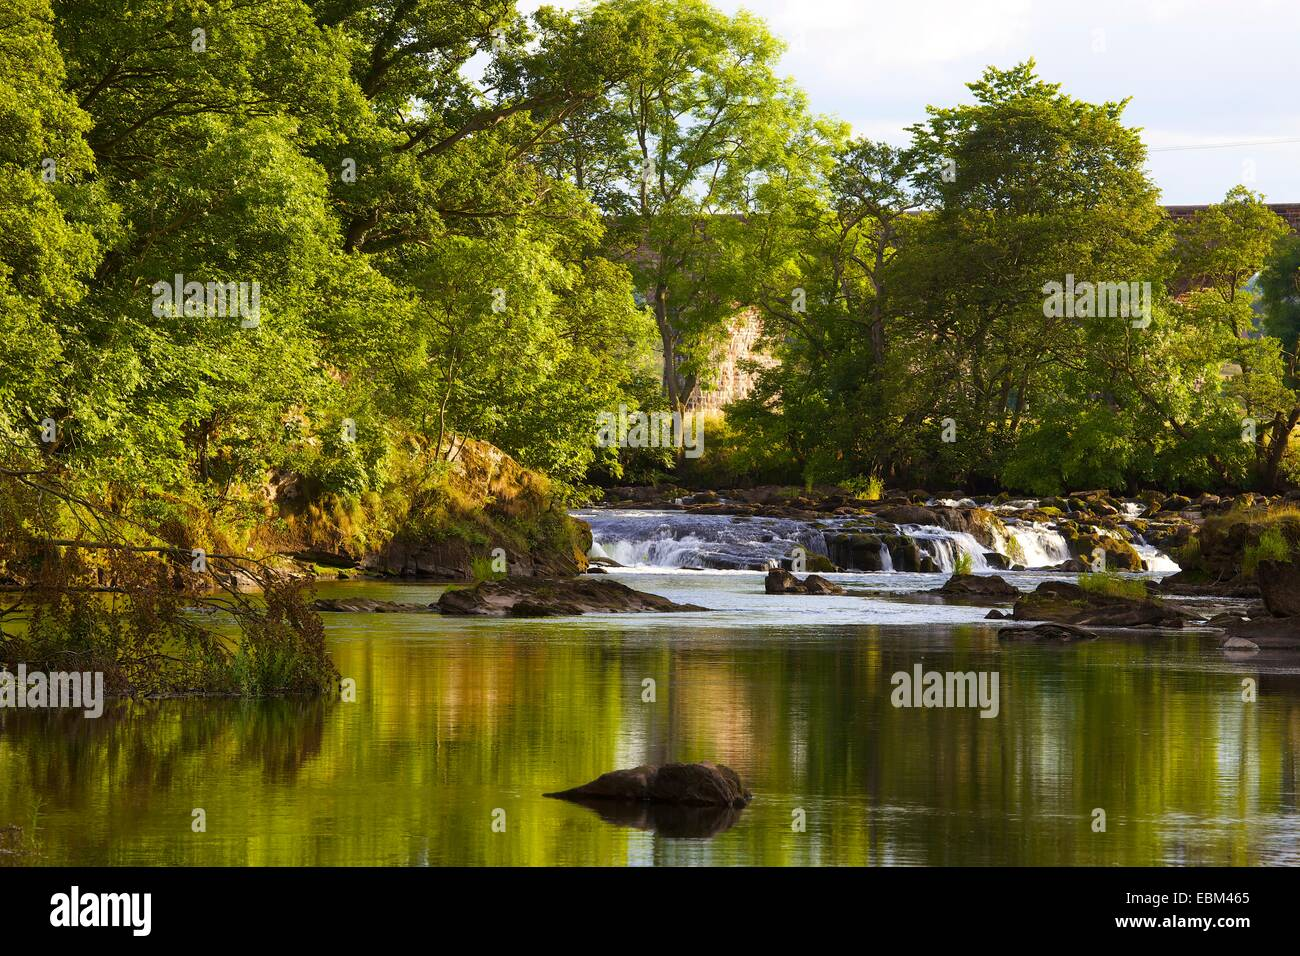 Weir at Force Mill, Eden Lacy, Eden Valley, Cumbria, England, UK. - Stock Image